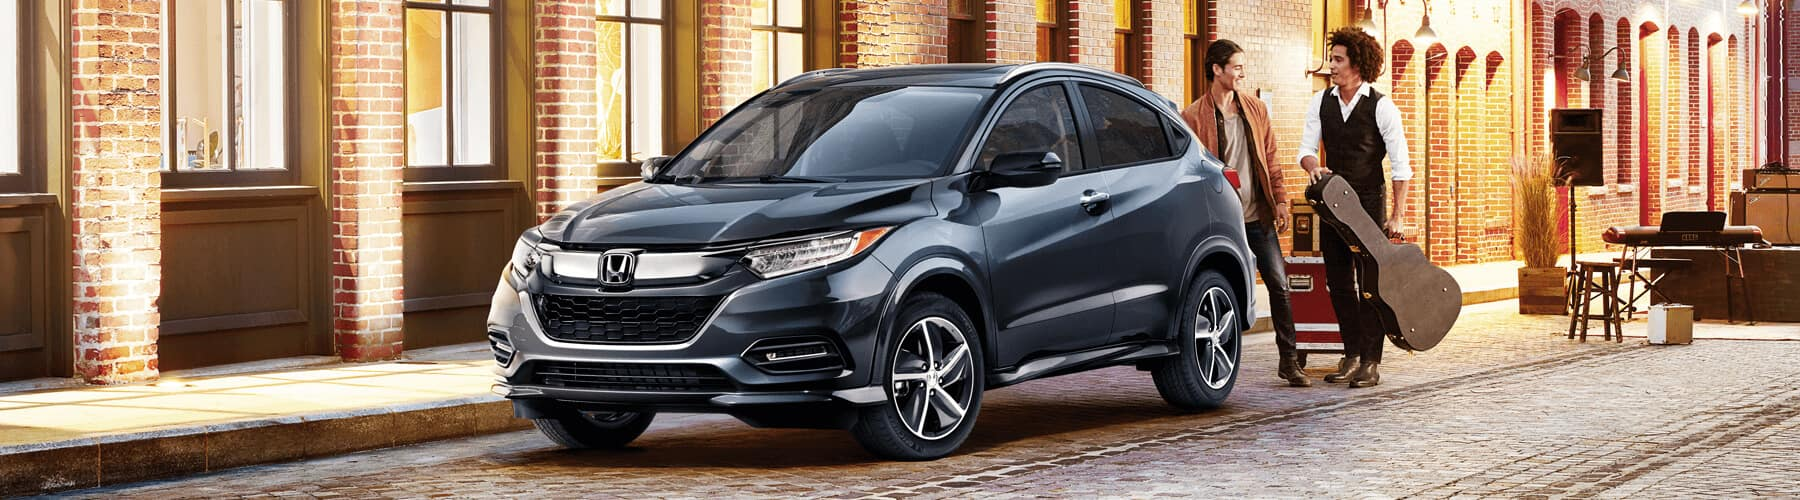 2020 Honda HR-V Slider